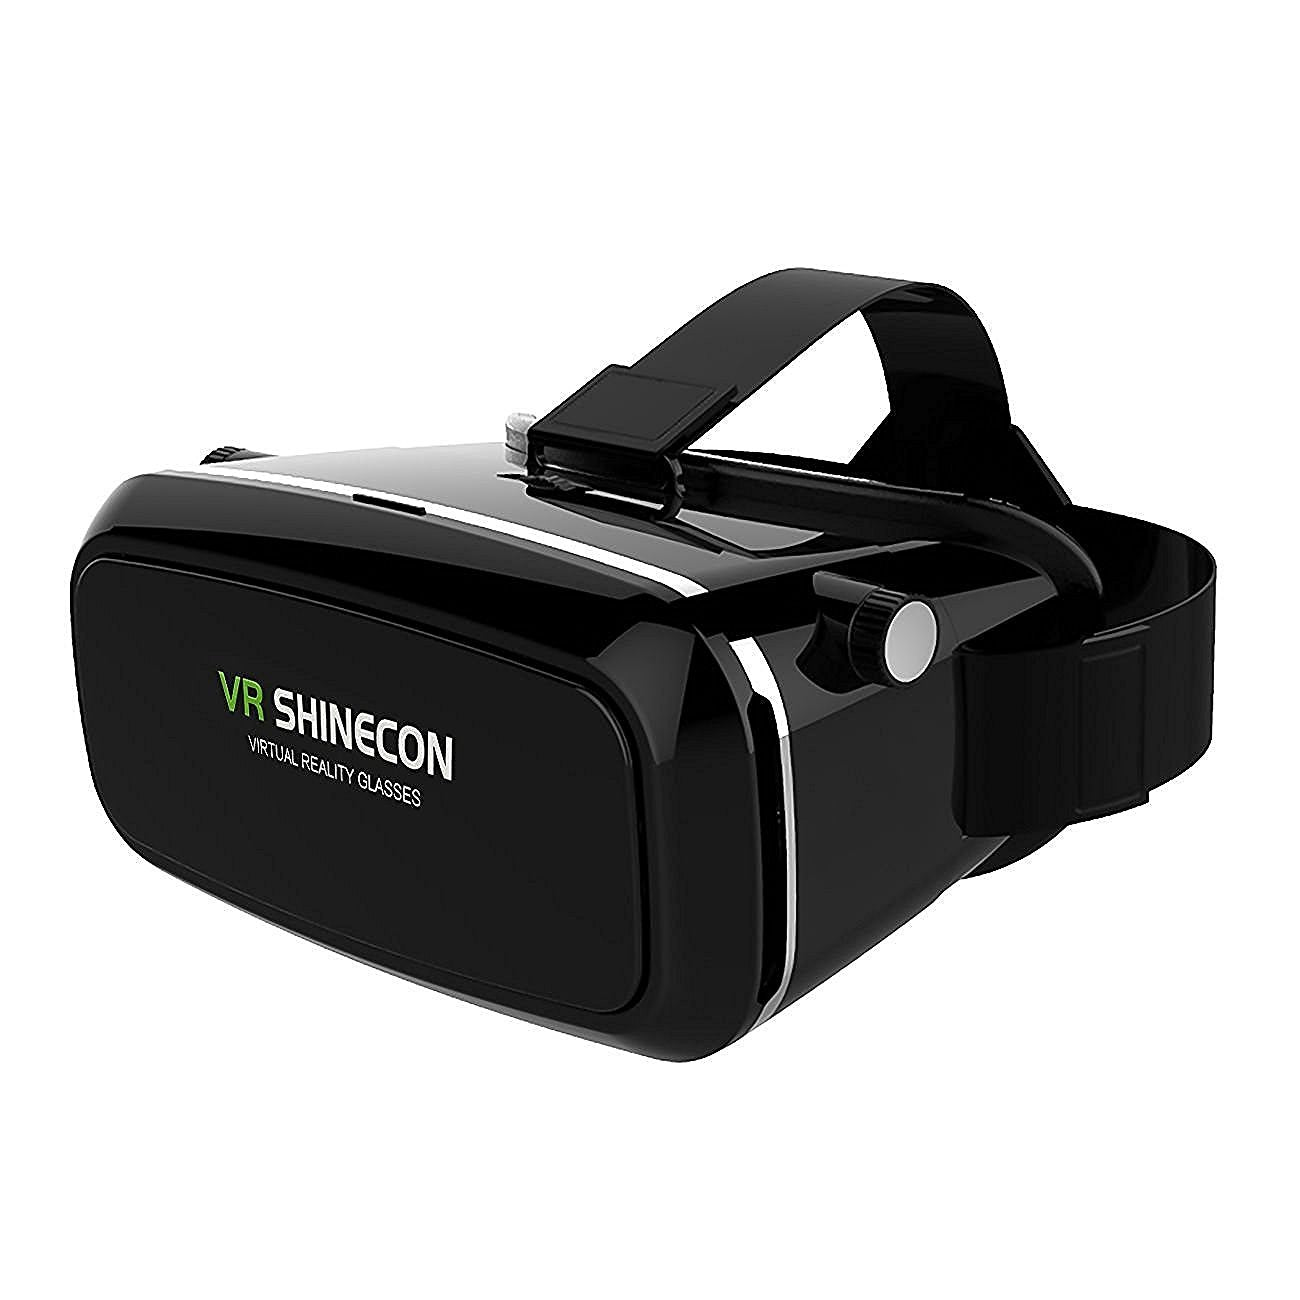 Shinecon - VR Shinecon Virtual Reality Glasses | Monthly Madness